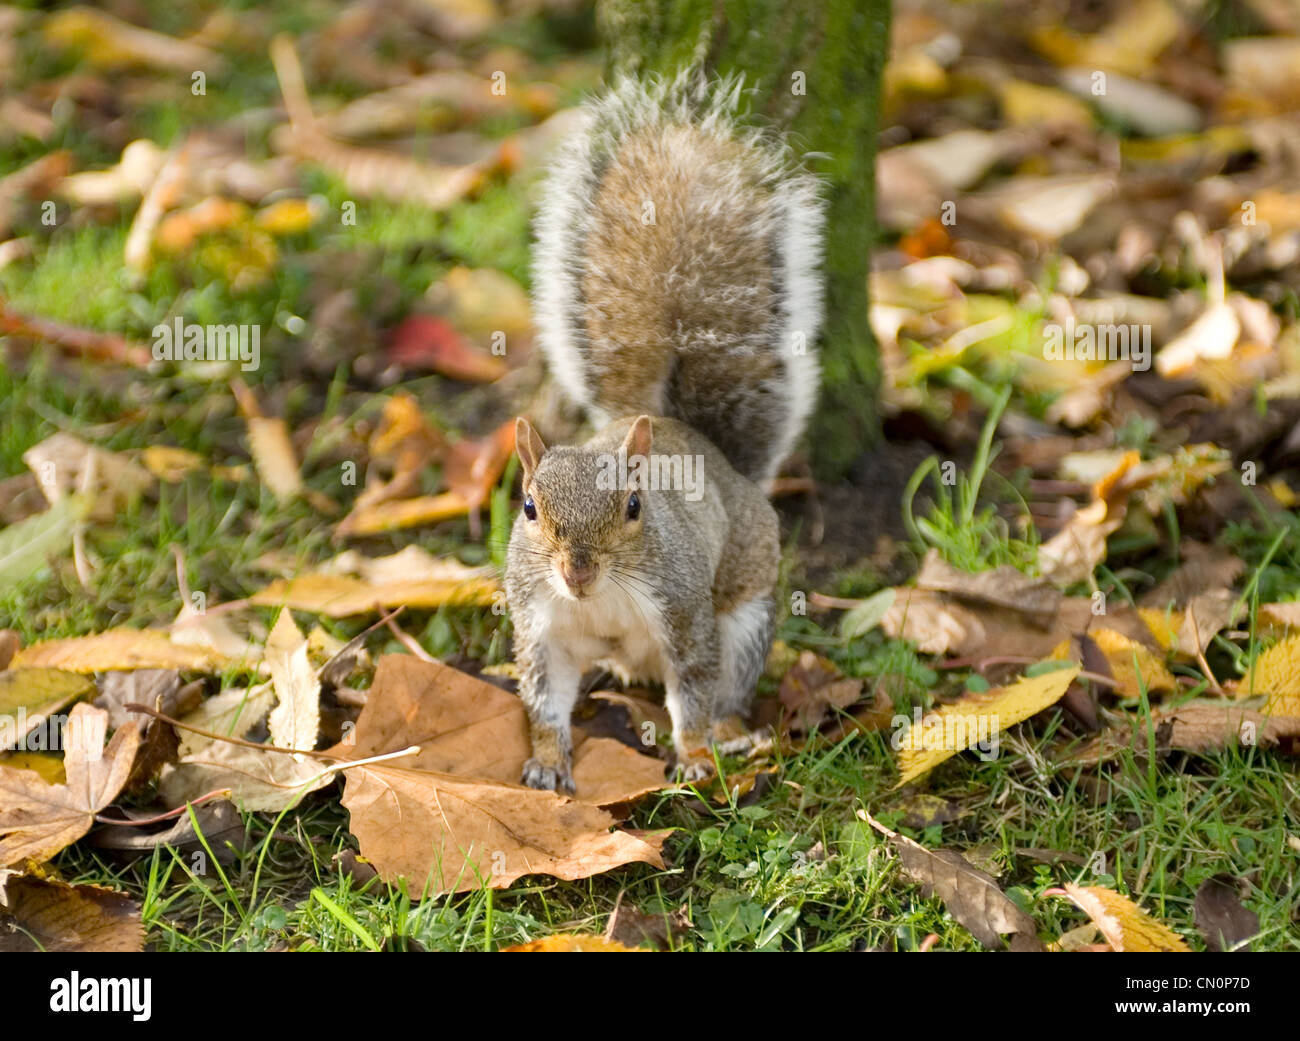 A squirrel on autumn leaves in the park looks towards the camera - Stock Image